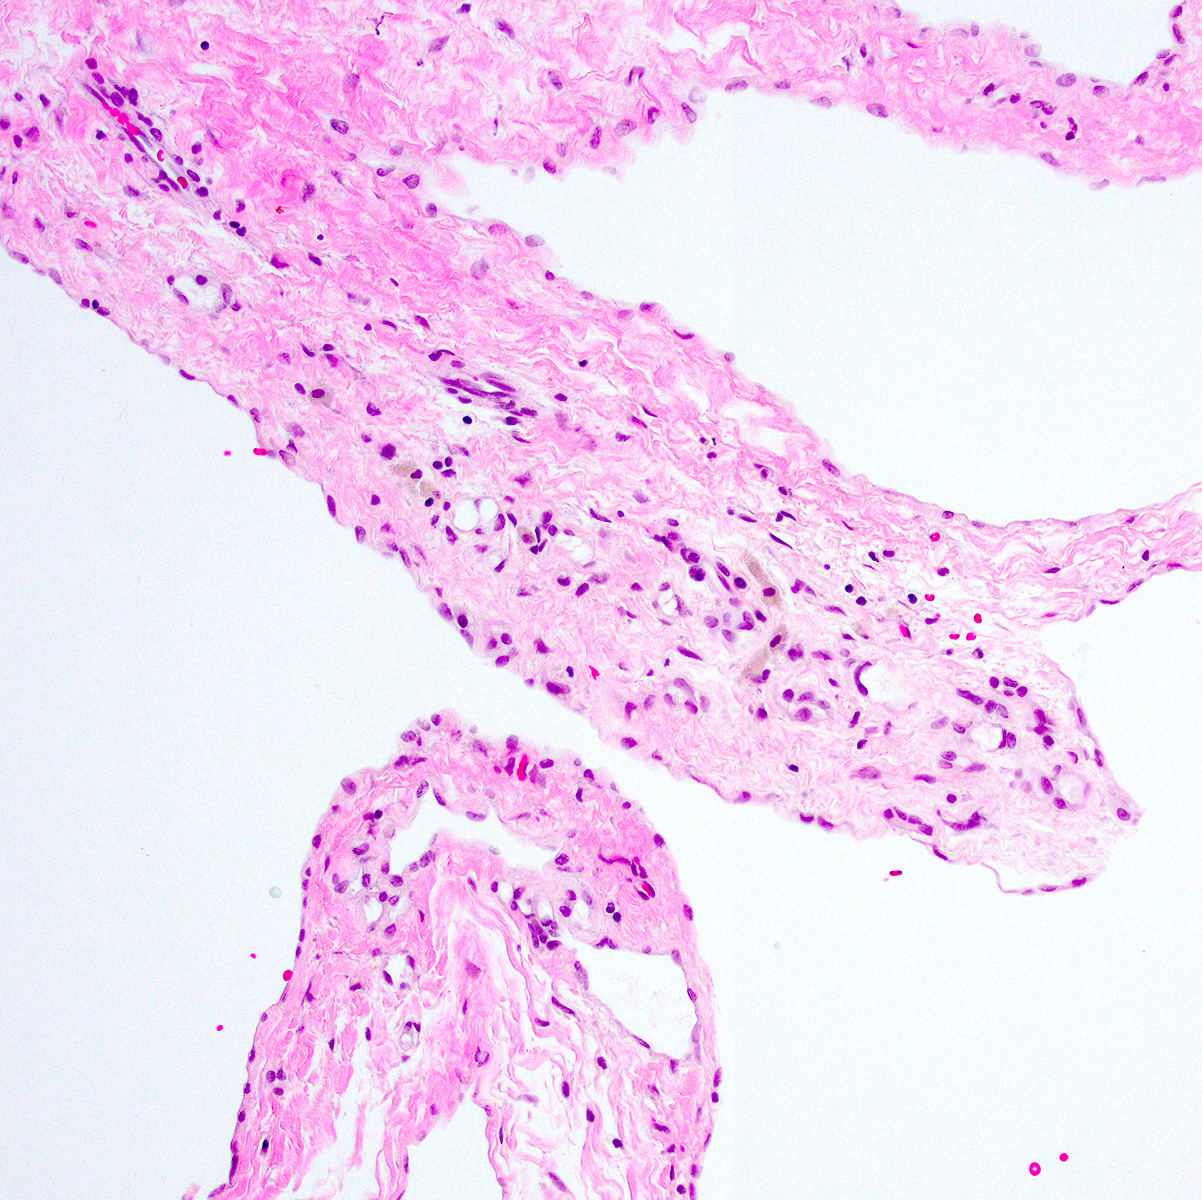 Microscopic adenomatoid proliferation